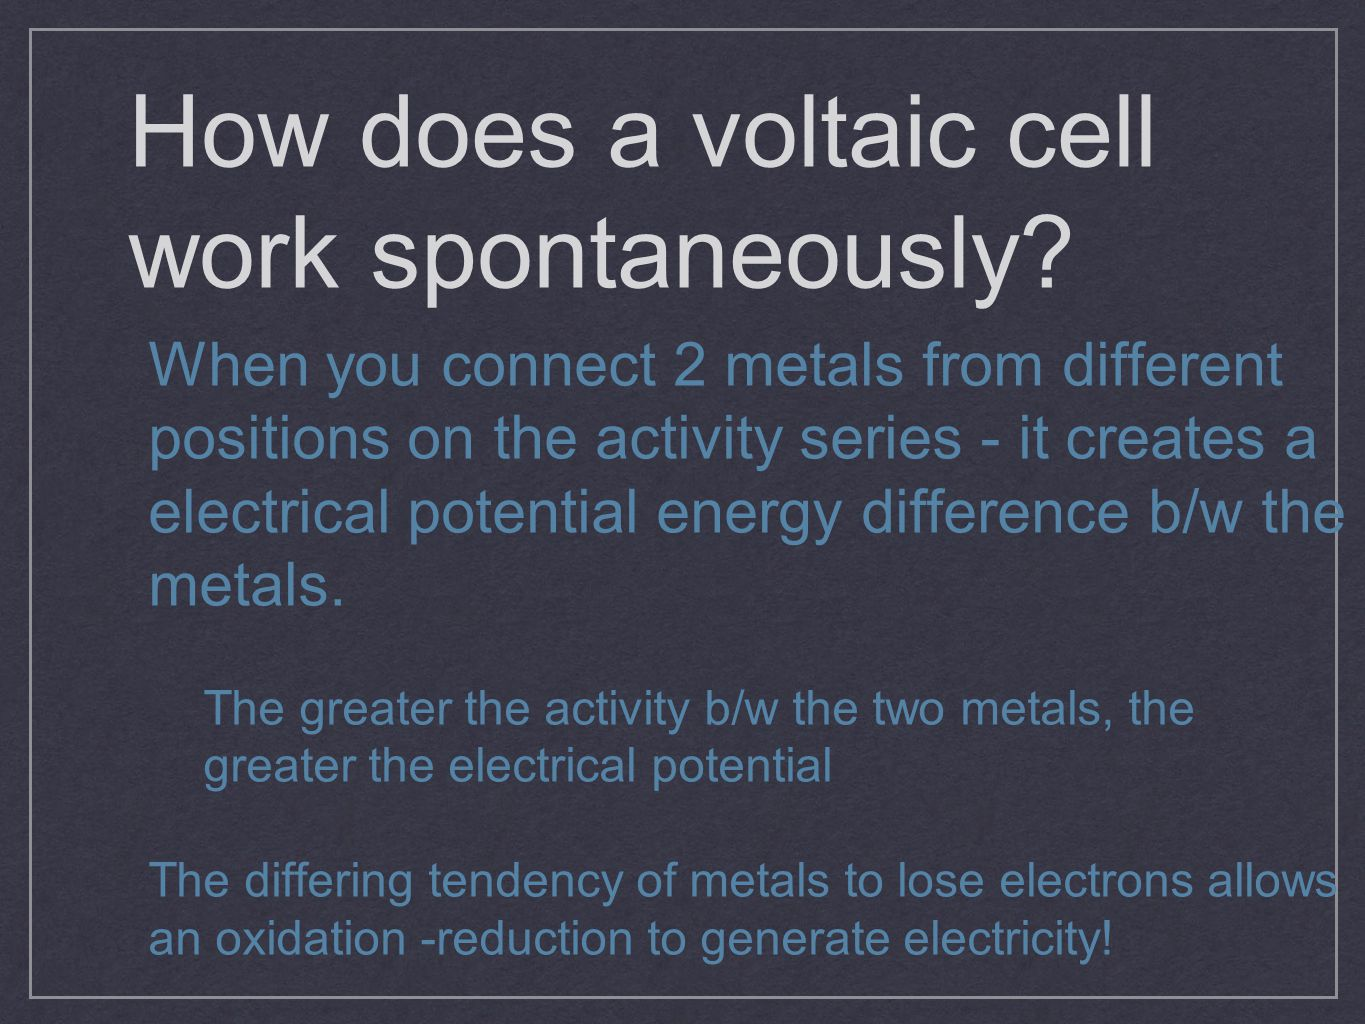 How does a voltaic cell work spontaneously